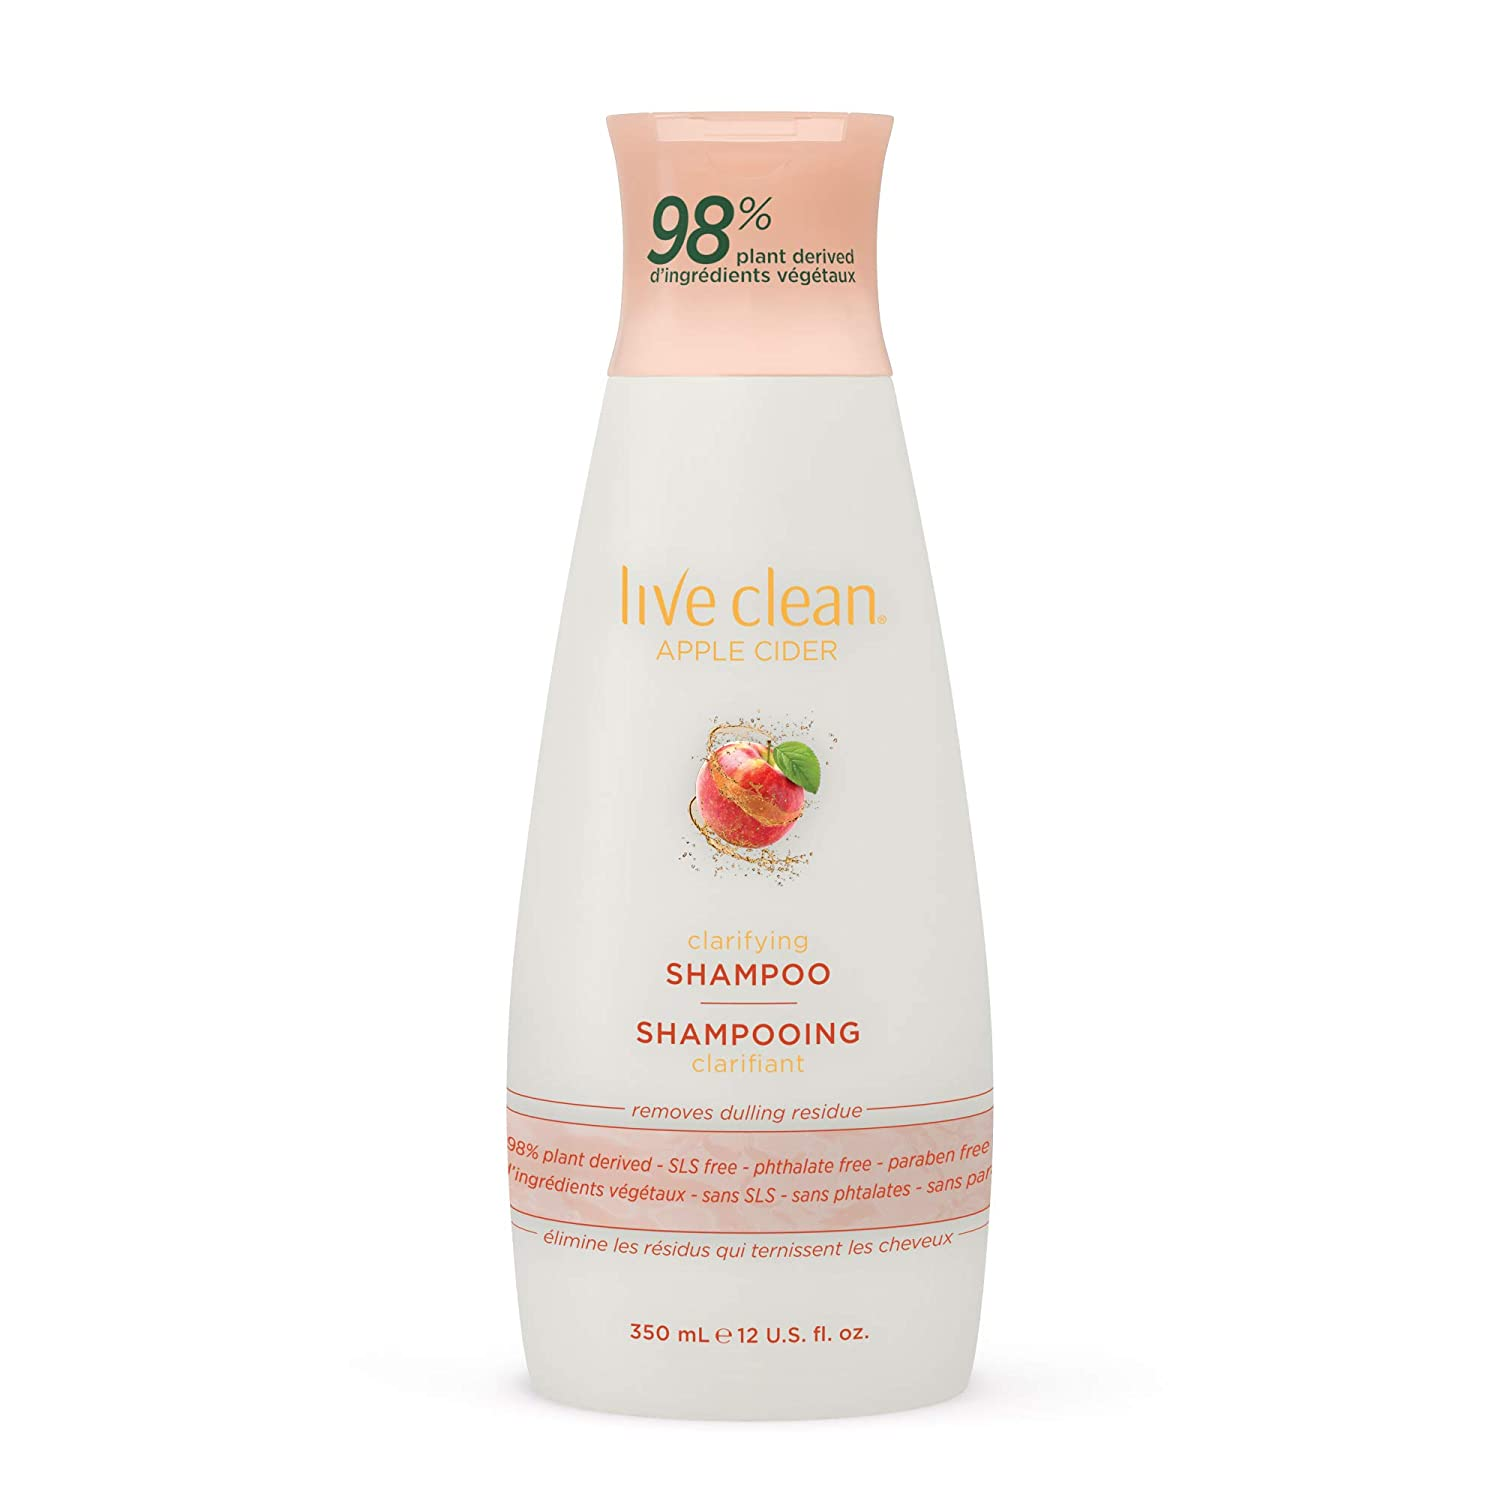 Live Clean Apple Cider Detox Shampoo, 12 Oz